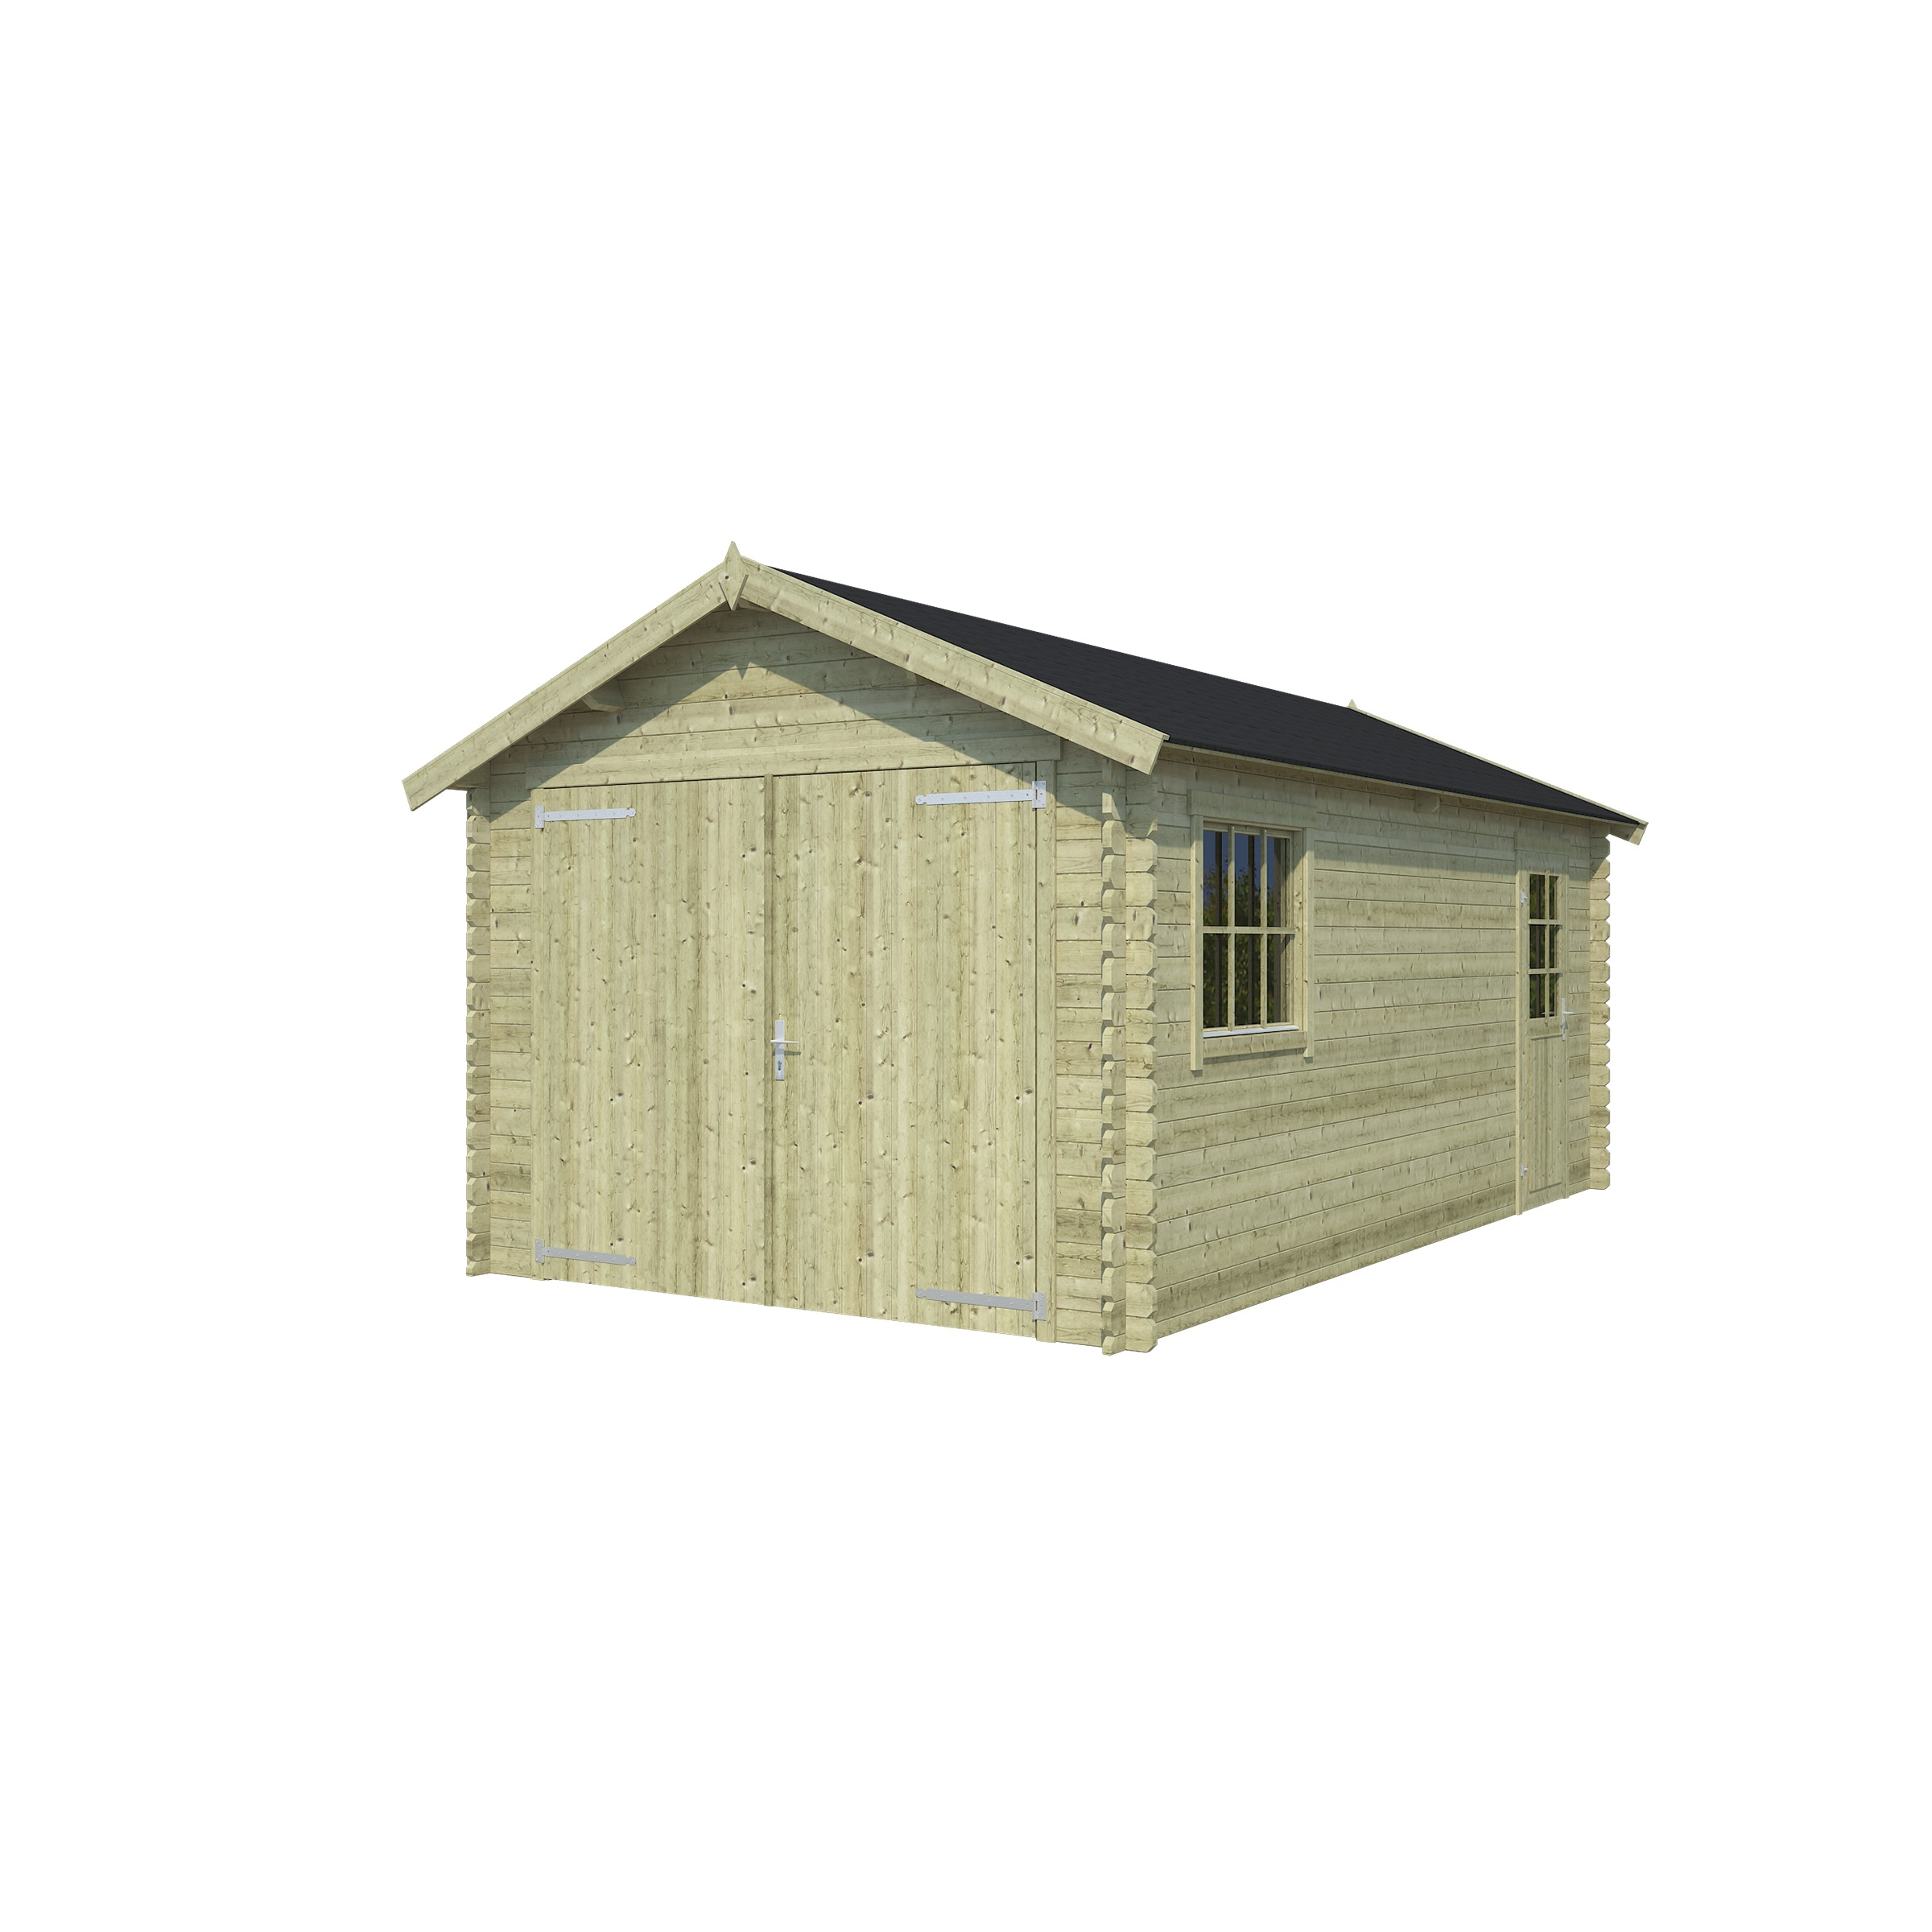 OLP Outdoor Life Products Tuinhuis Dillon 540 Groen gedompeld